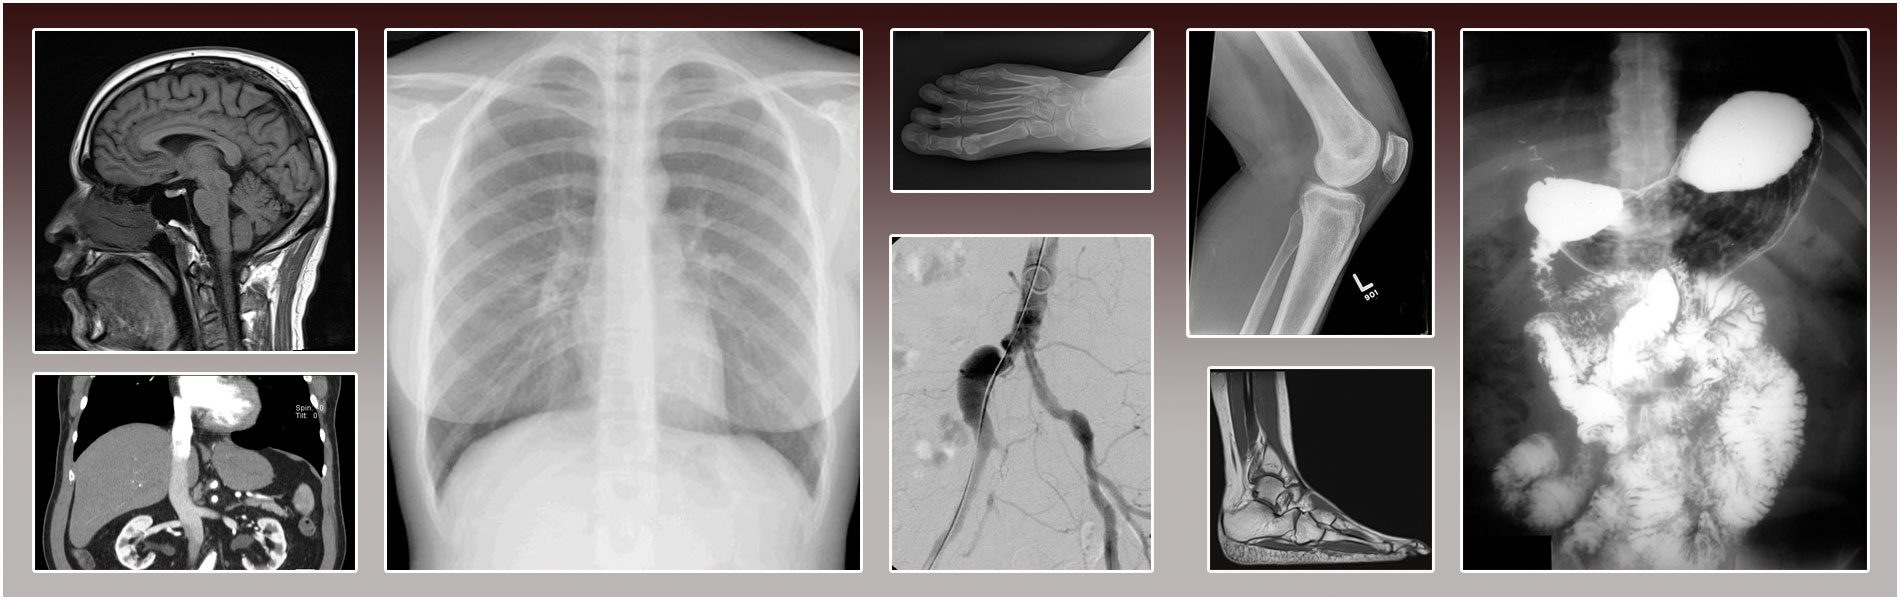 Collage of radiographic images